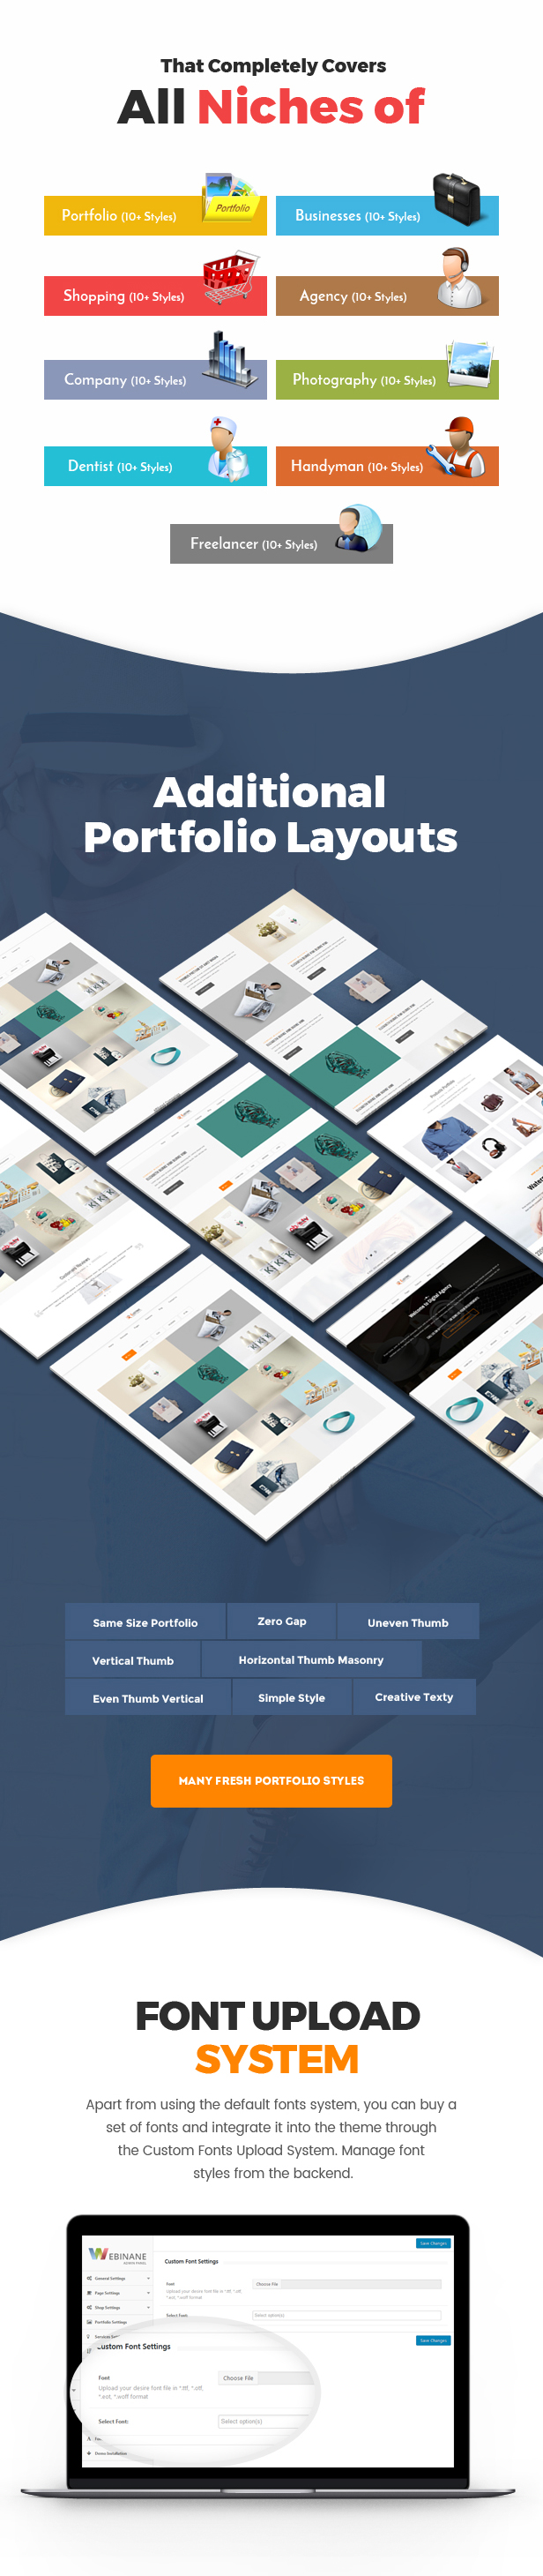 Electric - The WordPress Theme - 2